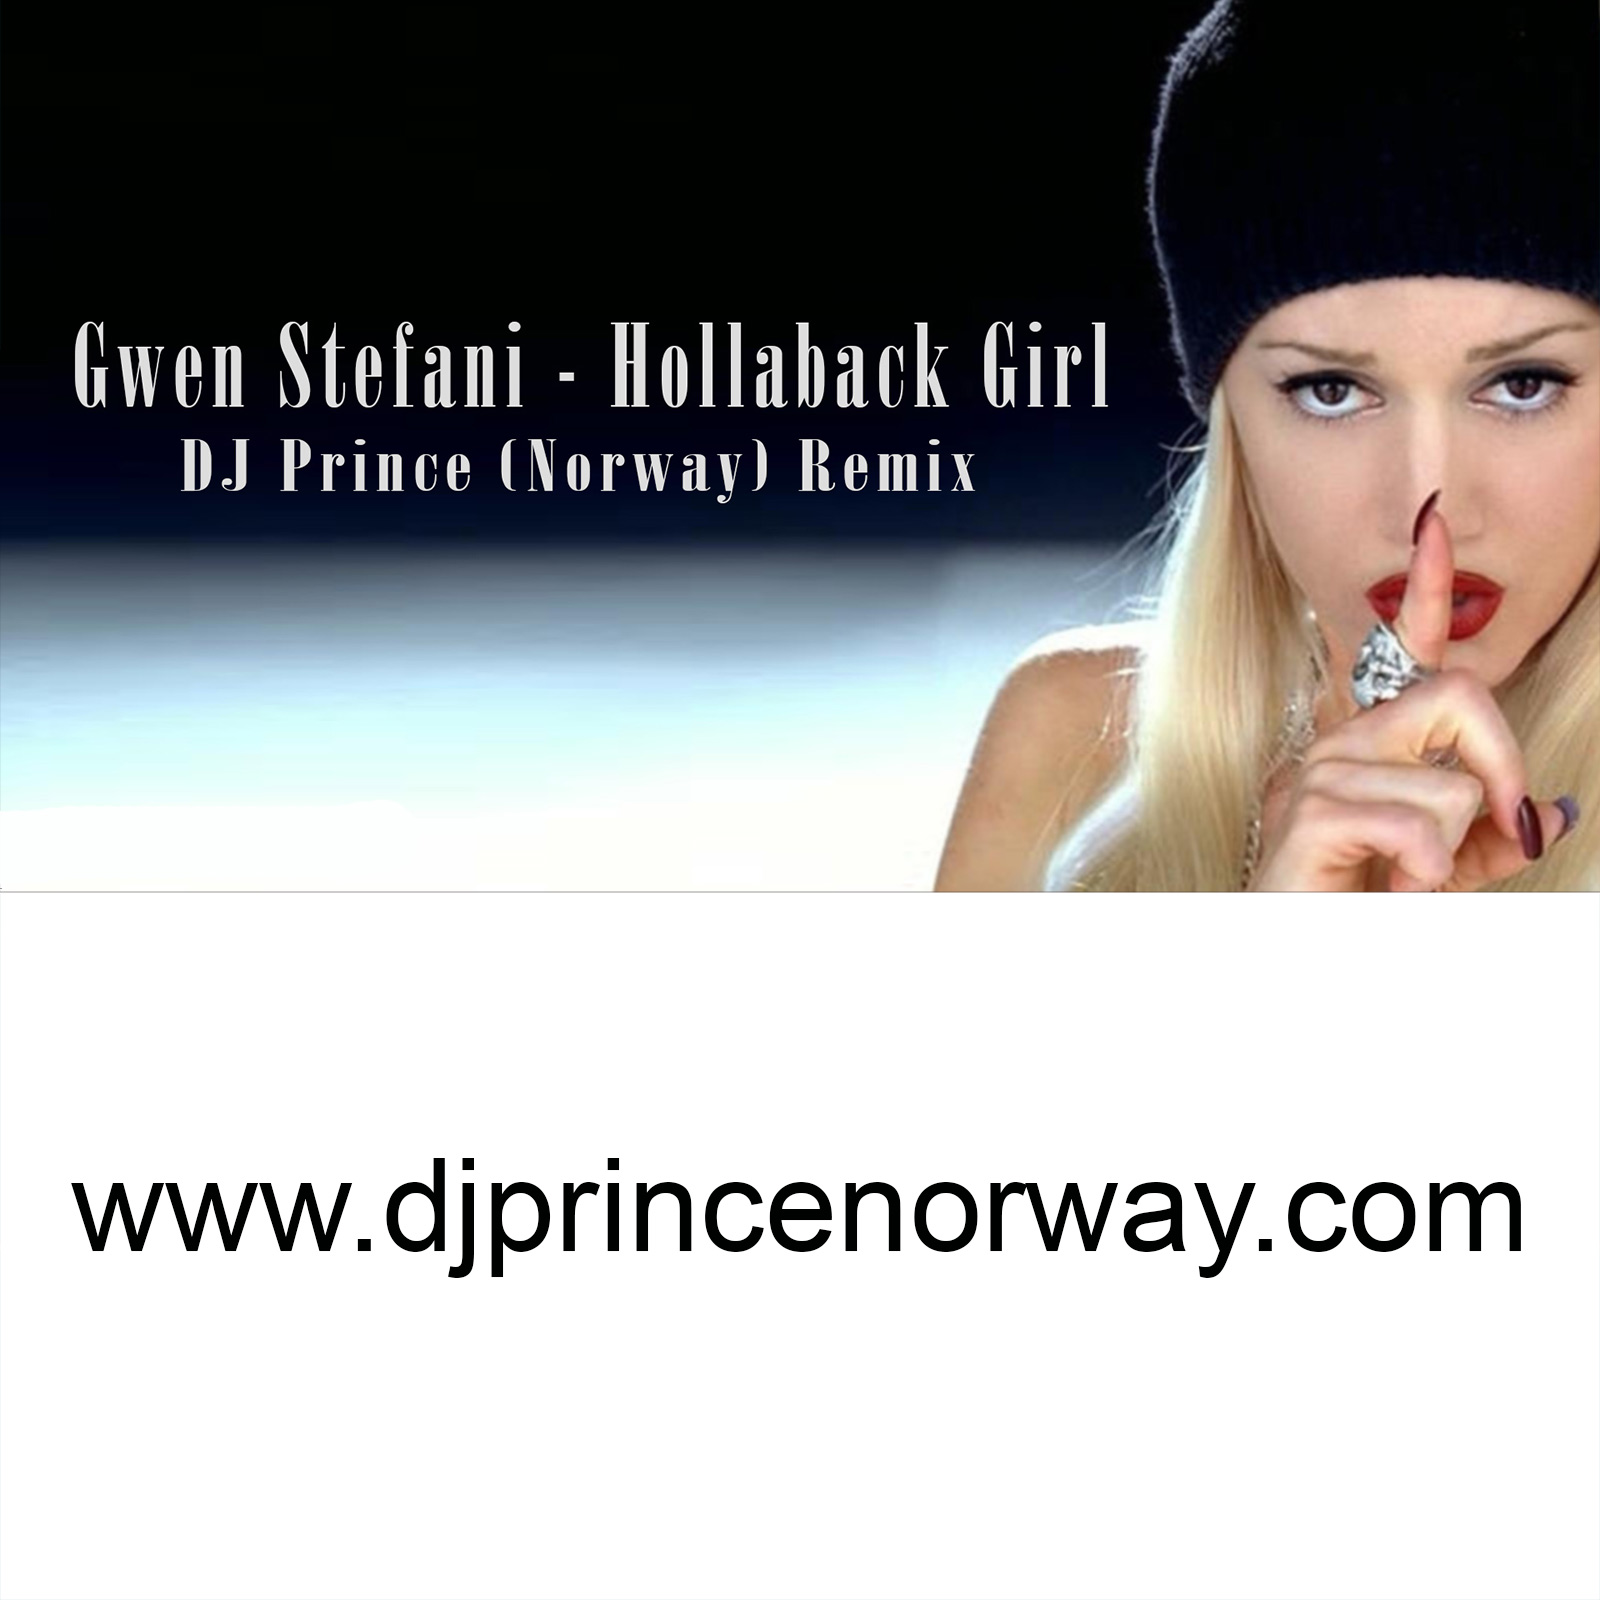 Gwen Stefani - Hollaback Girl (DJ Prince Norway Remix)